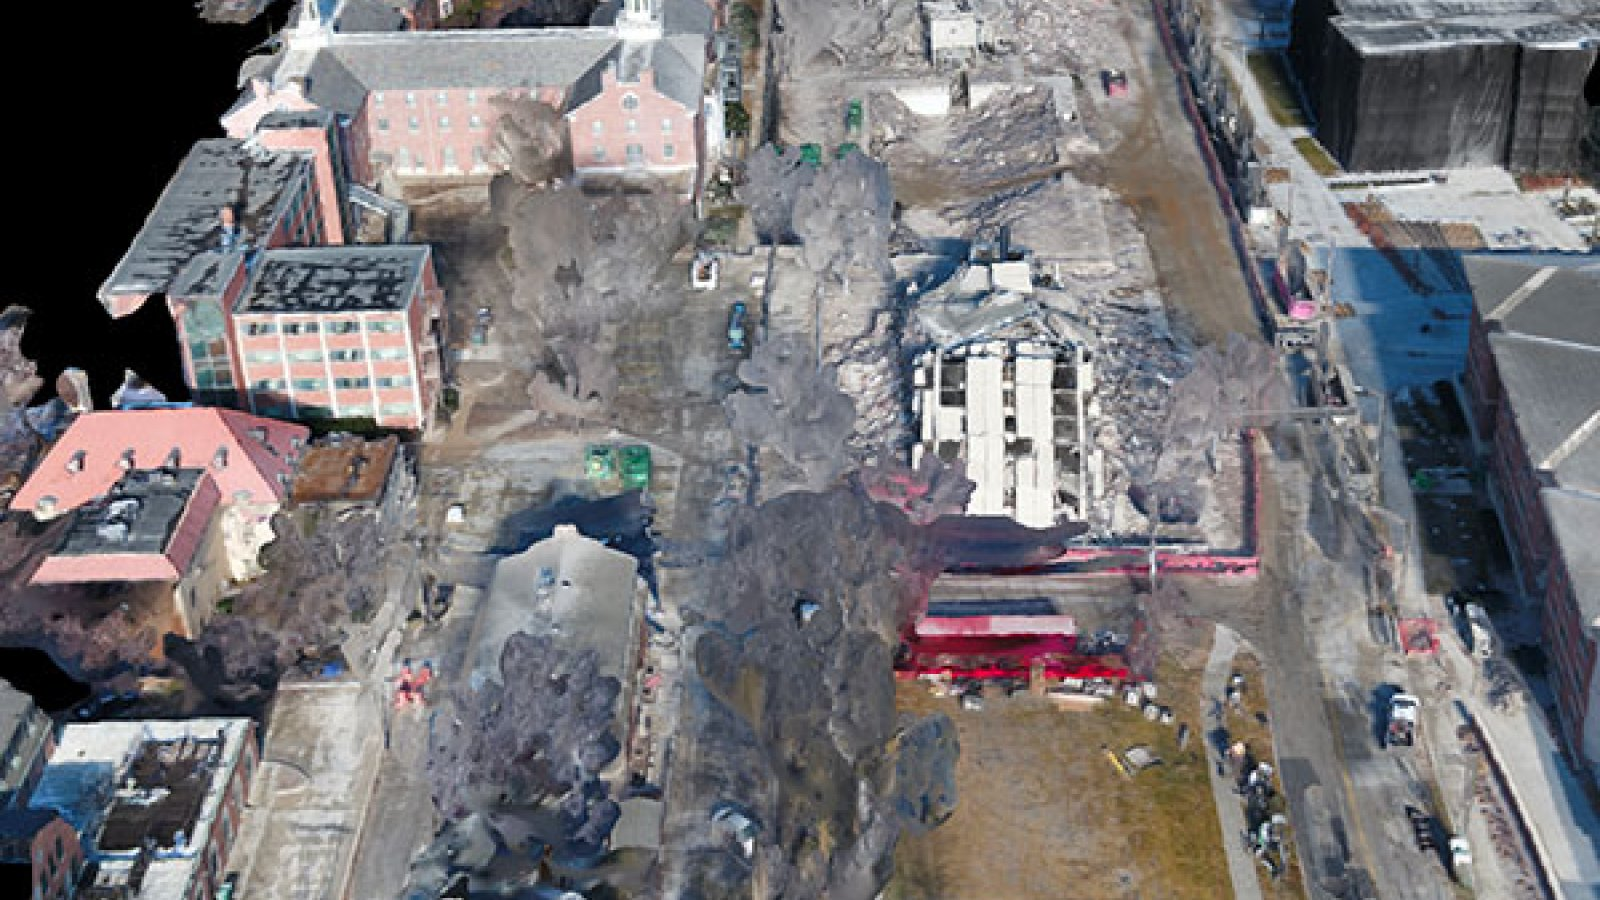 Richard Wood, assistant professor of civil engineering, took high-definition images of the Cather and Pound residence halls both before and after (pictured) their demolition on Dec. 22, 2017.